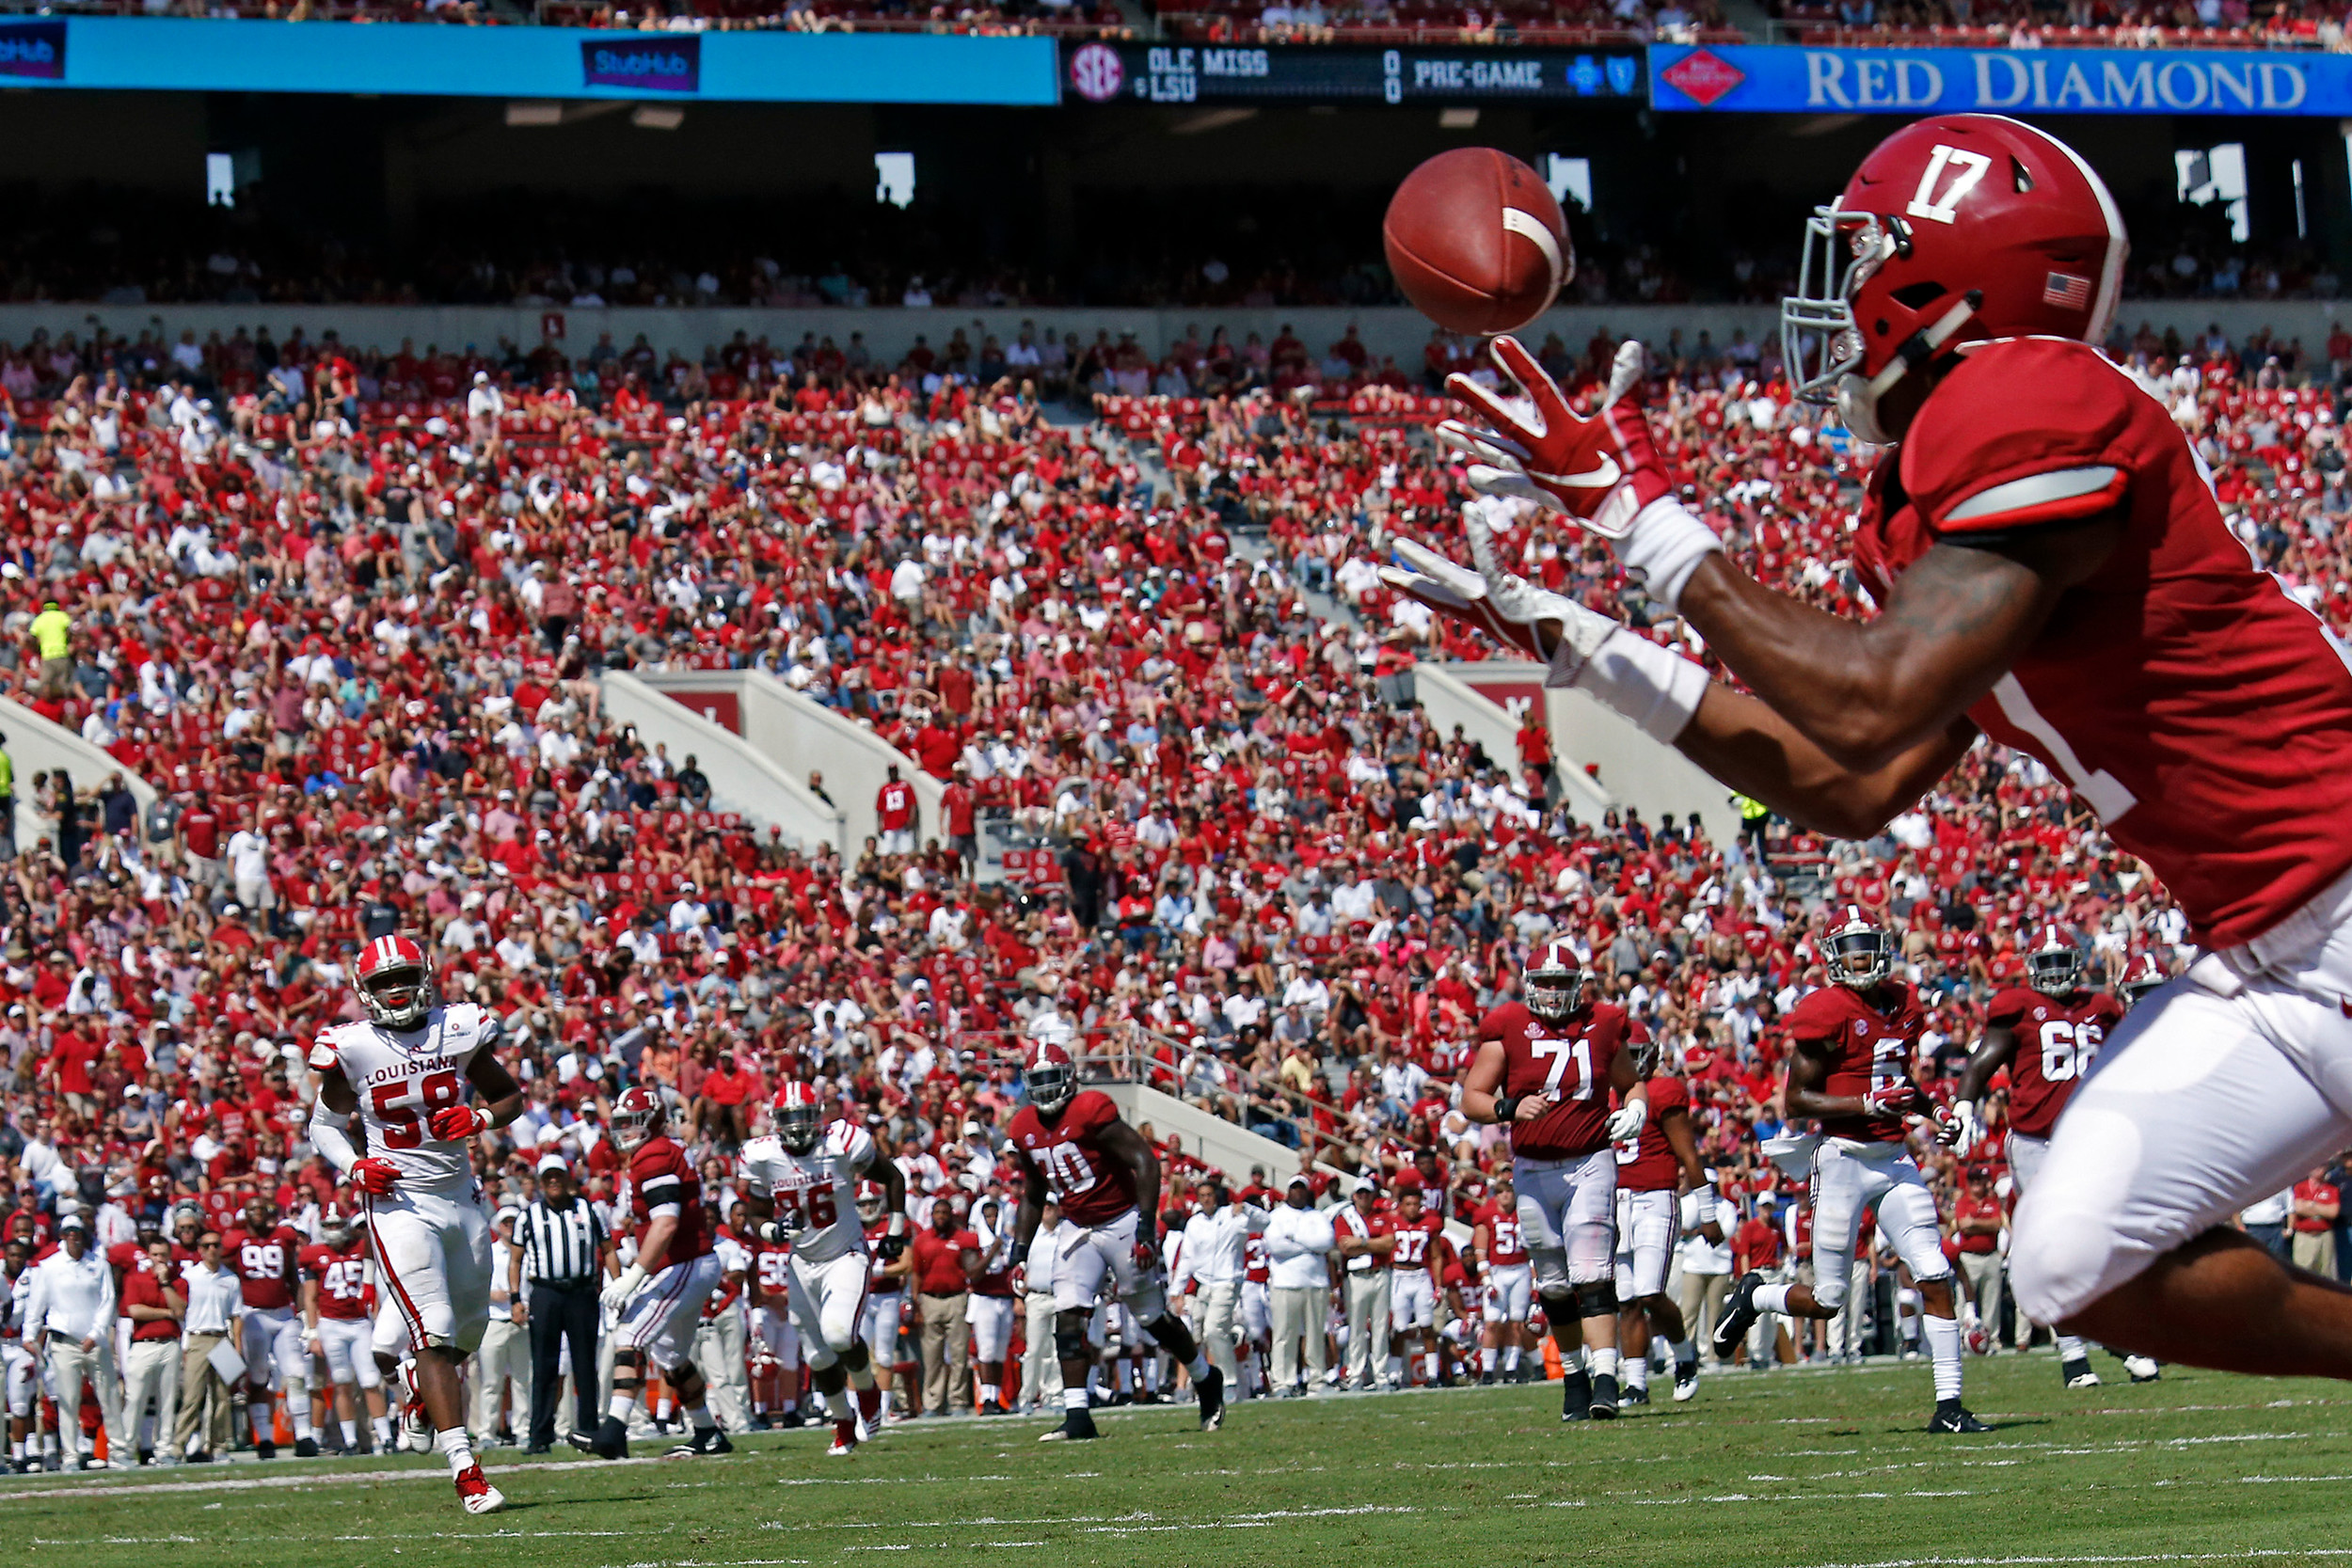 Alabama Crimson Tide wide receiver Jaylen Waddle (17) pulls in a pass for a touchdown at Bryant-Denny Stadium in Tuscaloosa, Al on September 29, 2018. Jason Clark / Daily Mountain Eagle